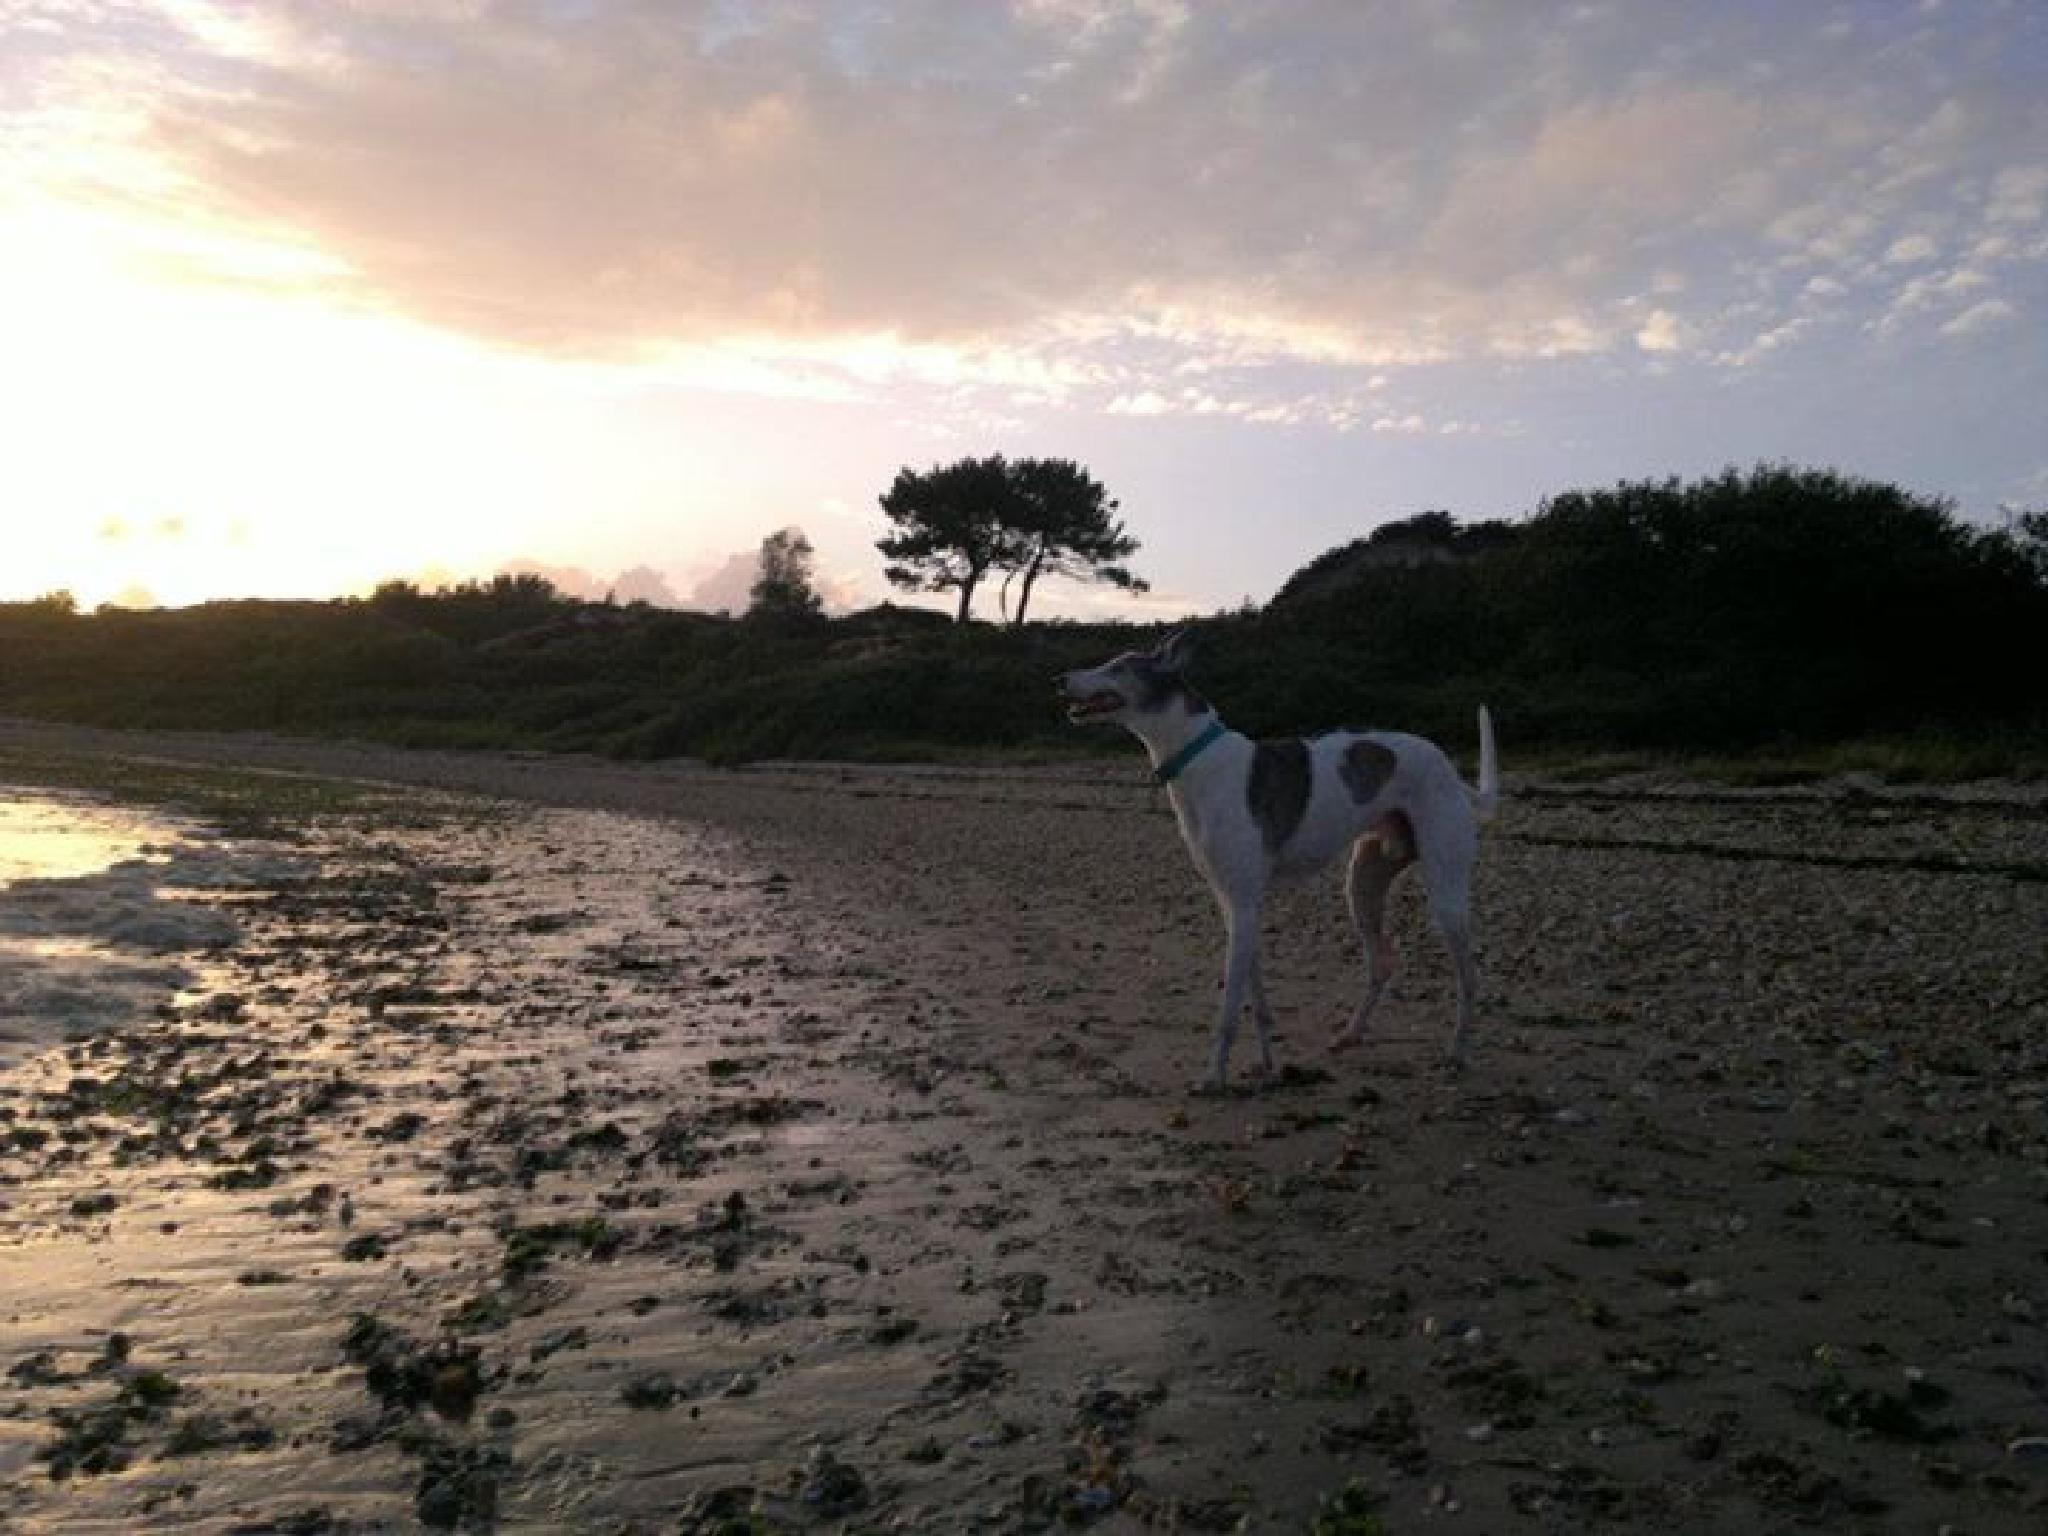 Greyhound on a beach by Naomi D Tillotson-Keating